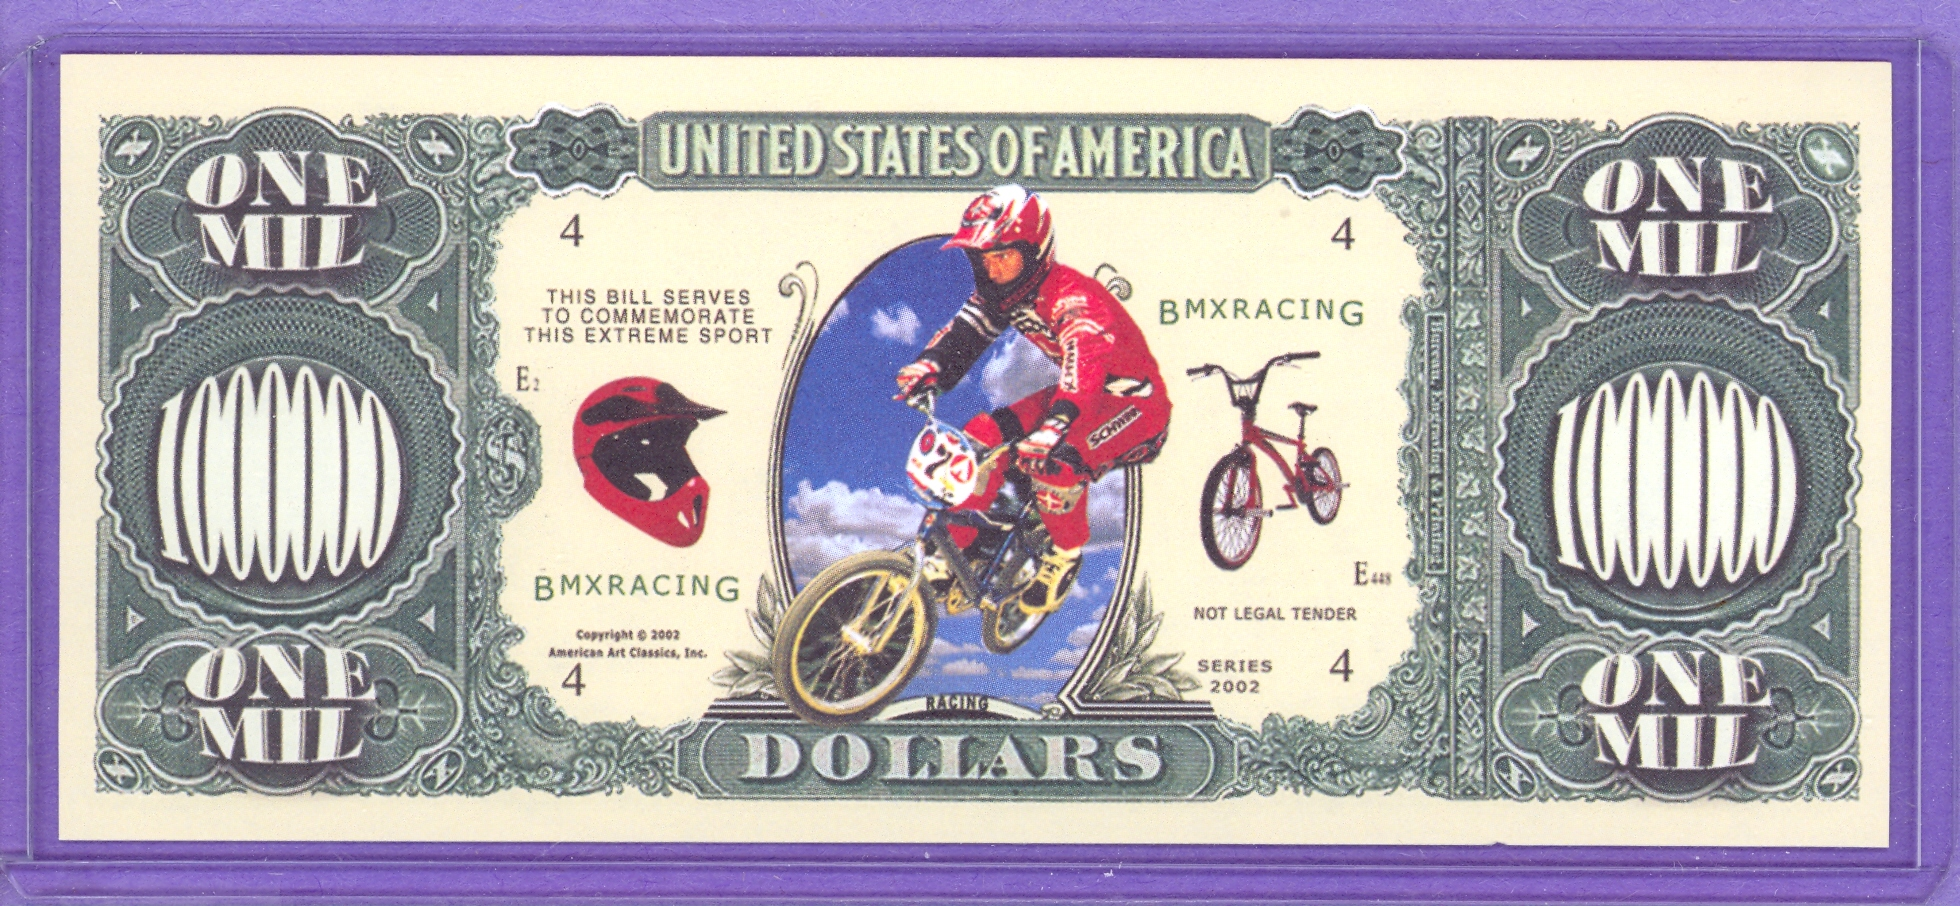 2002 BMX Racing Fantasy Note